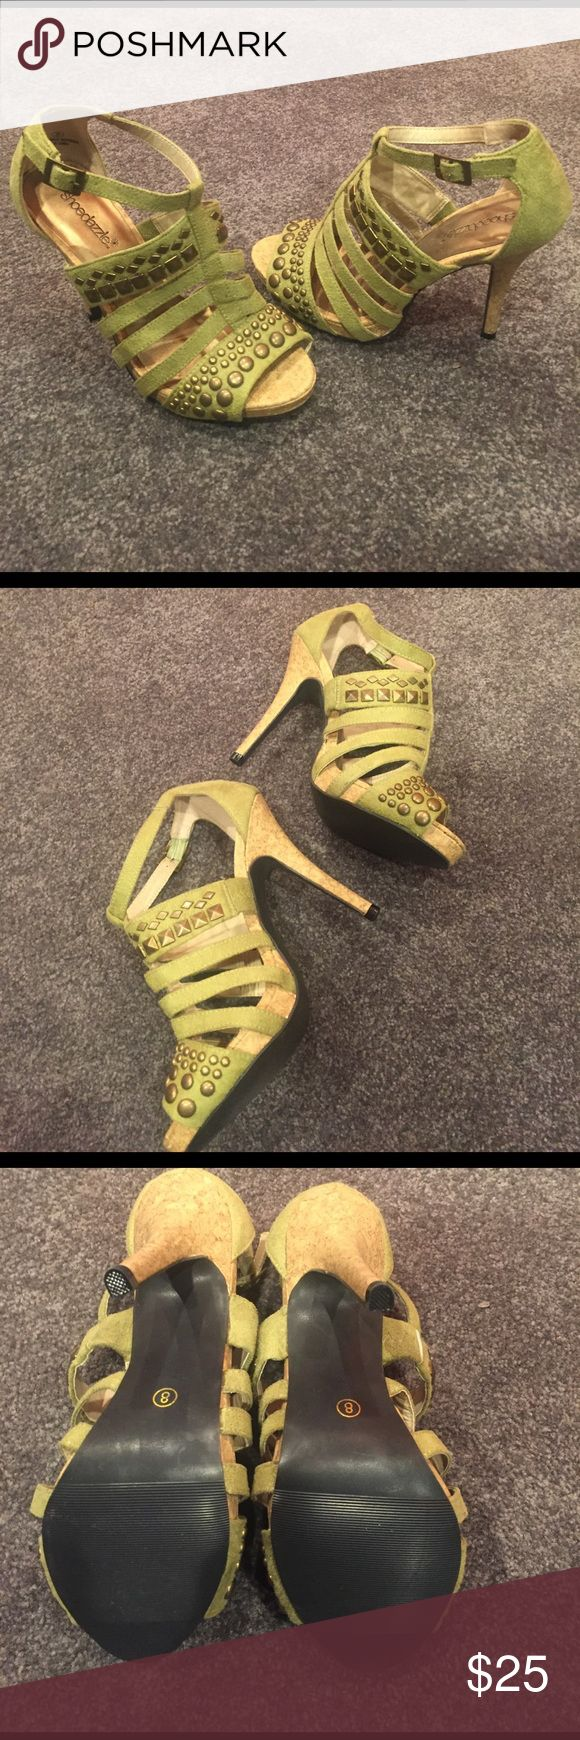 NWOT Hot! 🔥 Shoe Dazzle Green Stilettos Sz 8 New without tags, only worn inside the house to try on, light green suede with cork material heal, super cute!!! Shoe Dazzle Shoes Heels